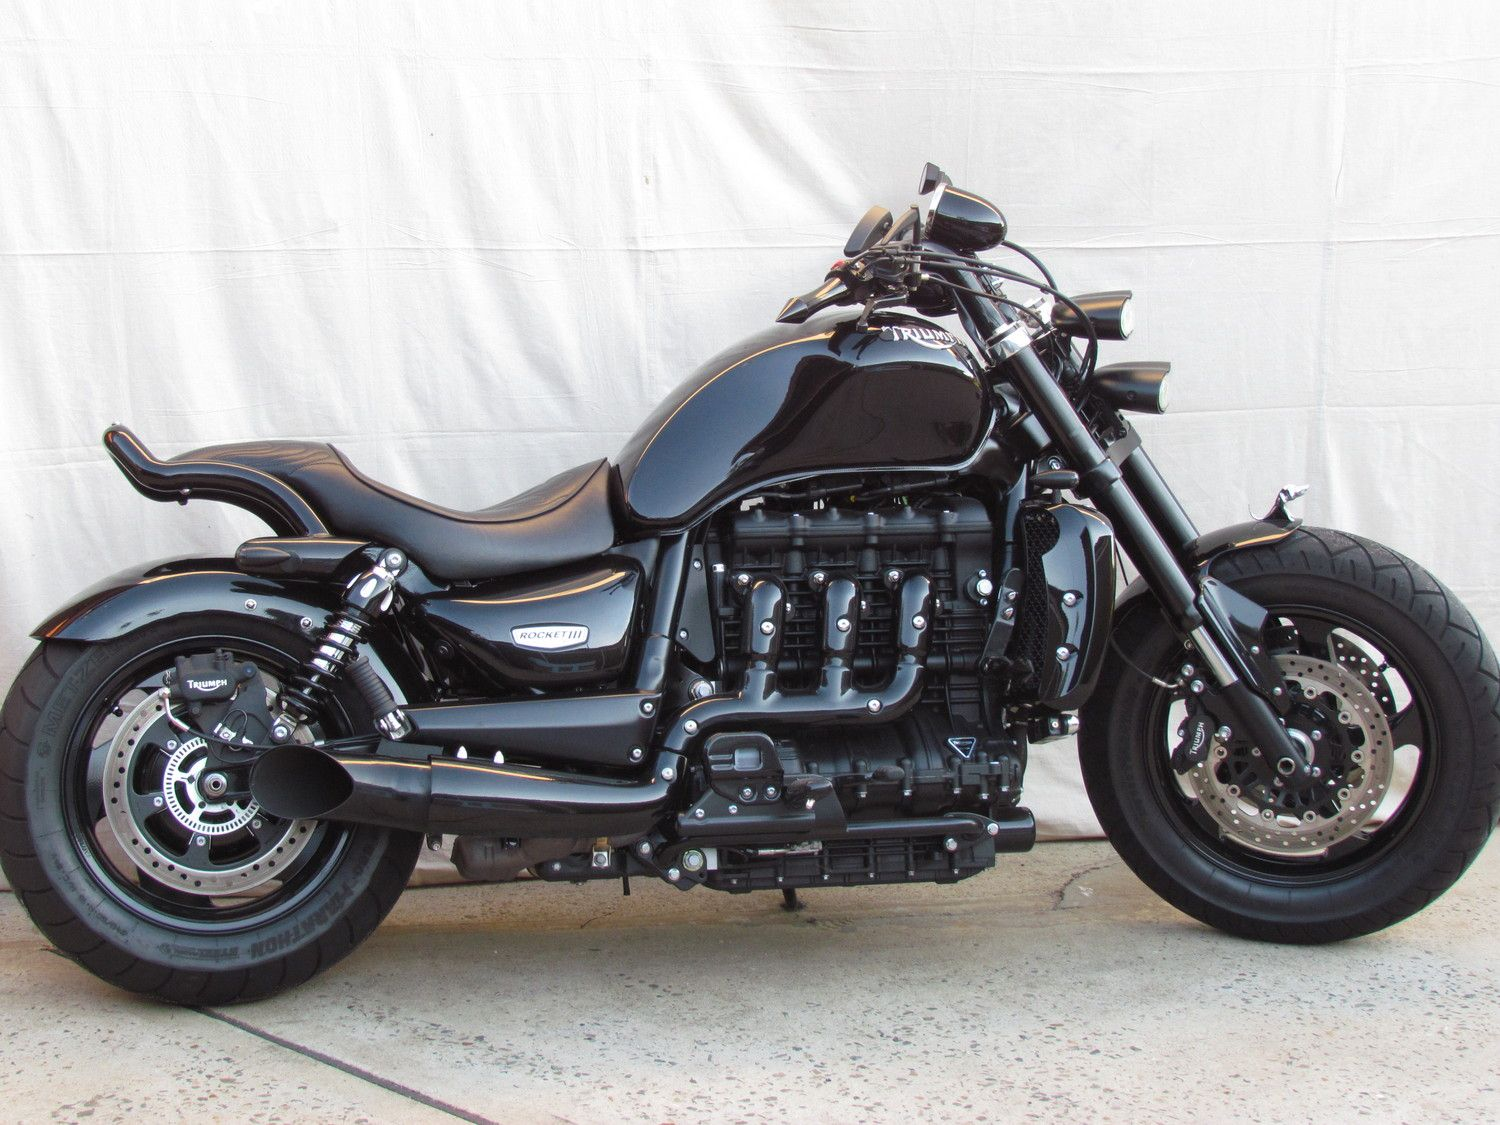 Triumph Rocket 3 This Is Very Very Nice Scoots And Such